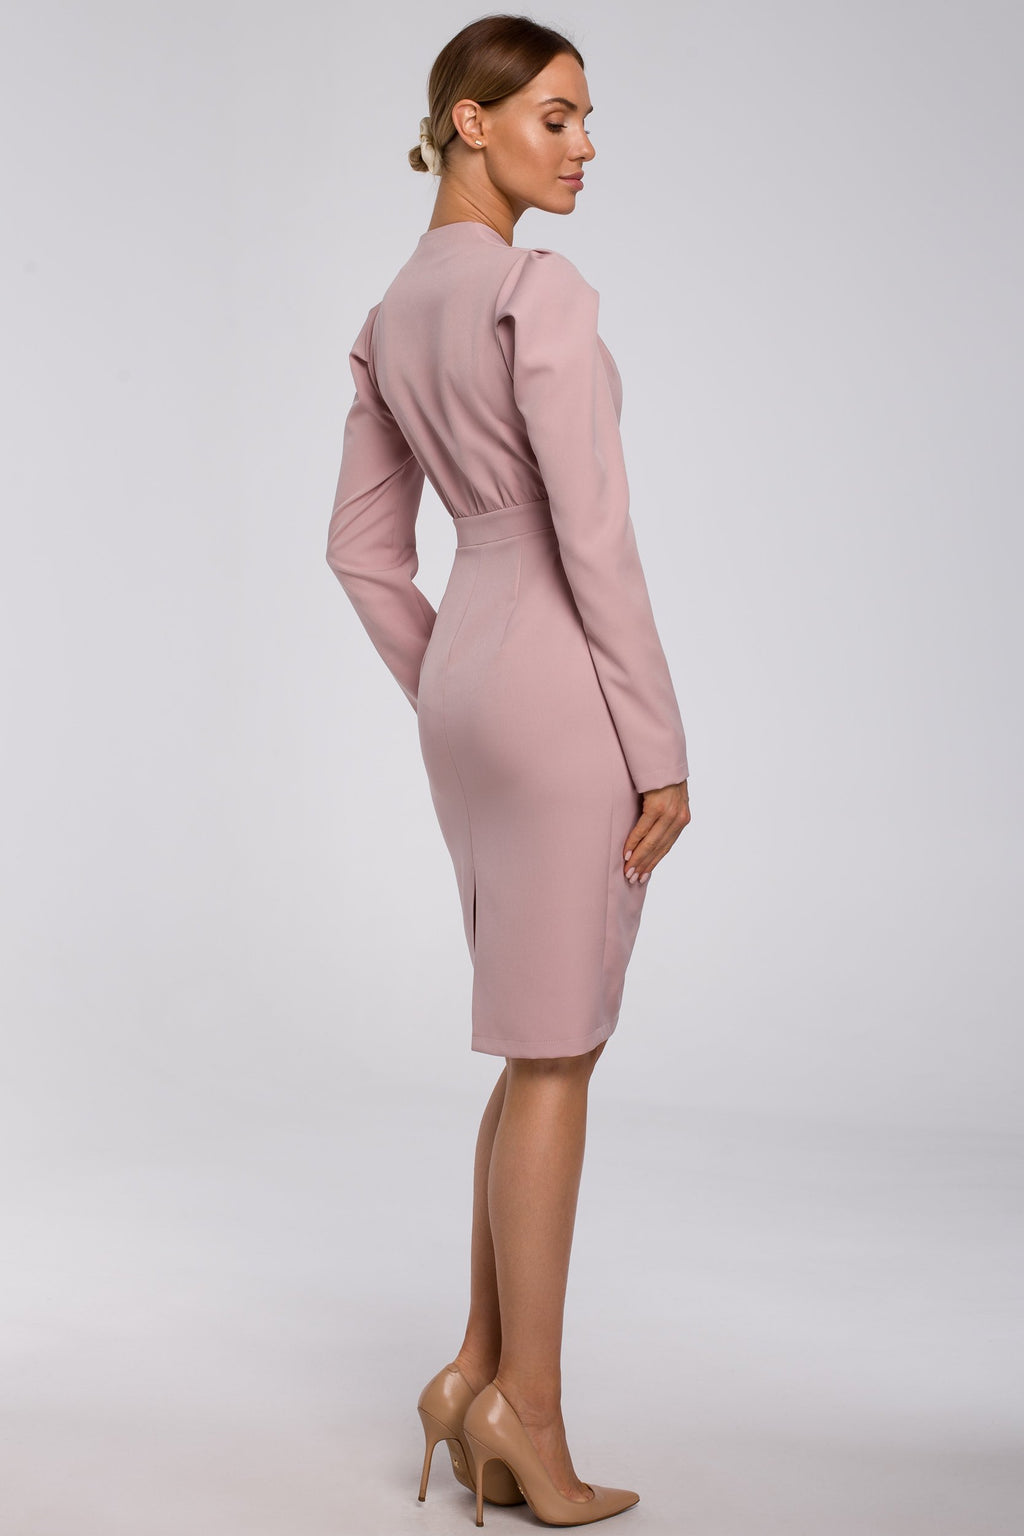 Midi Powder Pink Dress With Gathered Front - So Chic Boutique